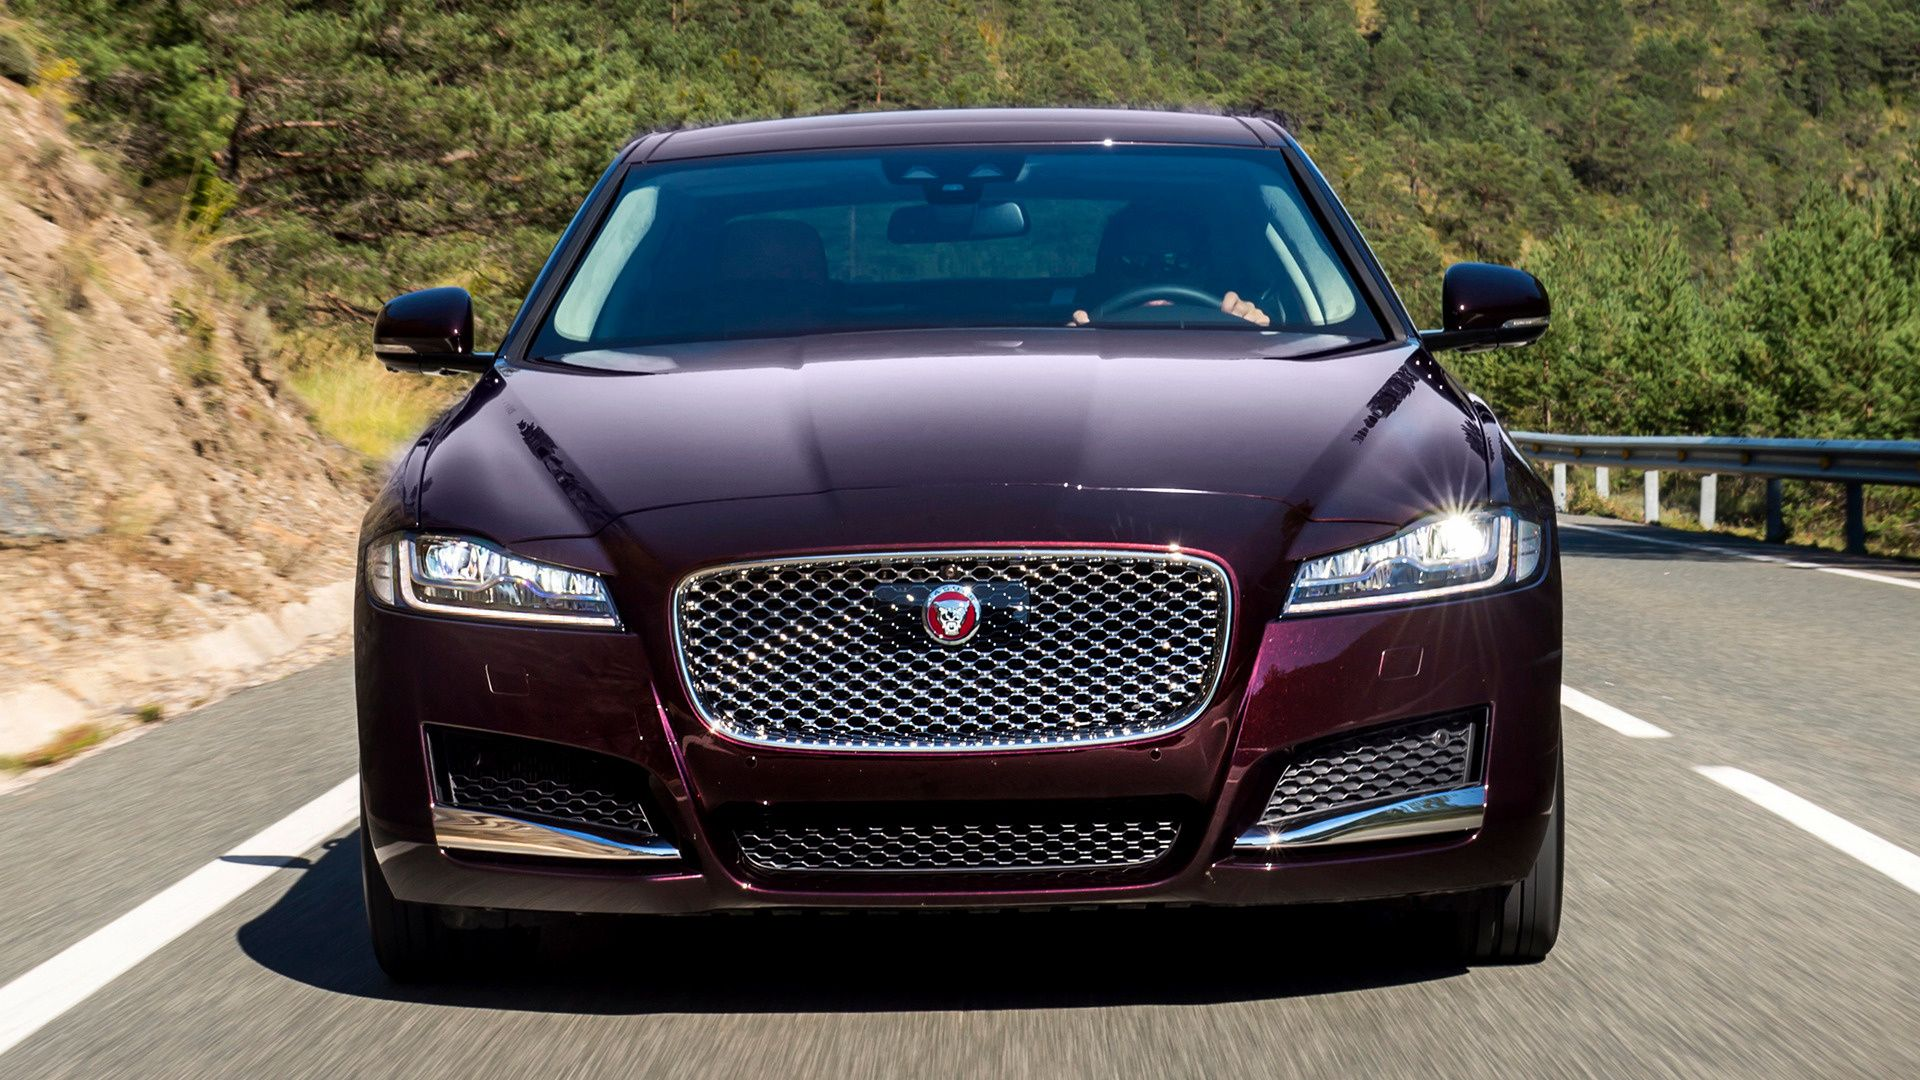 Jaguar Xf Cars Desktop Wallpapers K Ultra Hd Hd Wallpapers In 2019